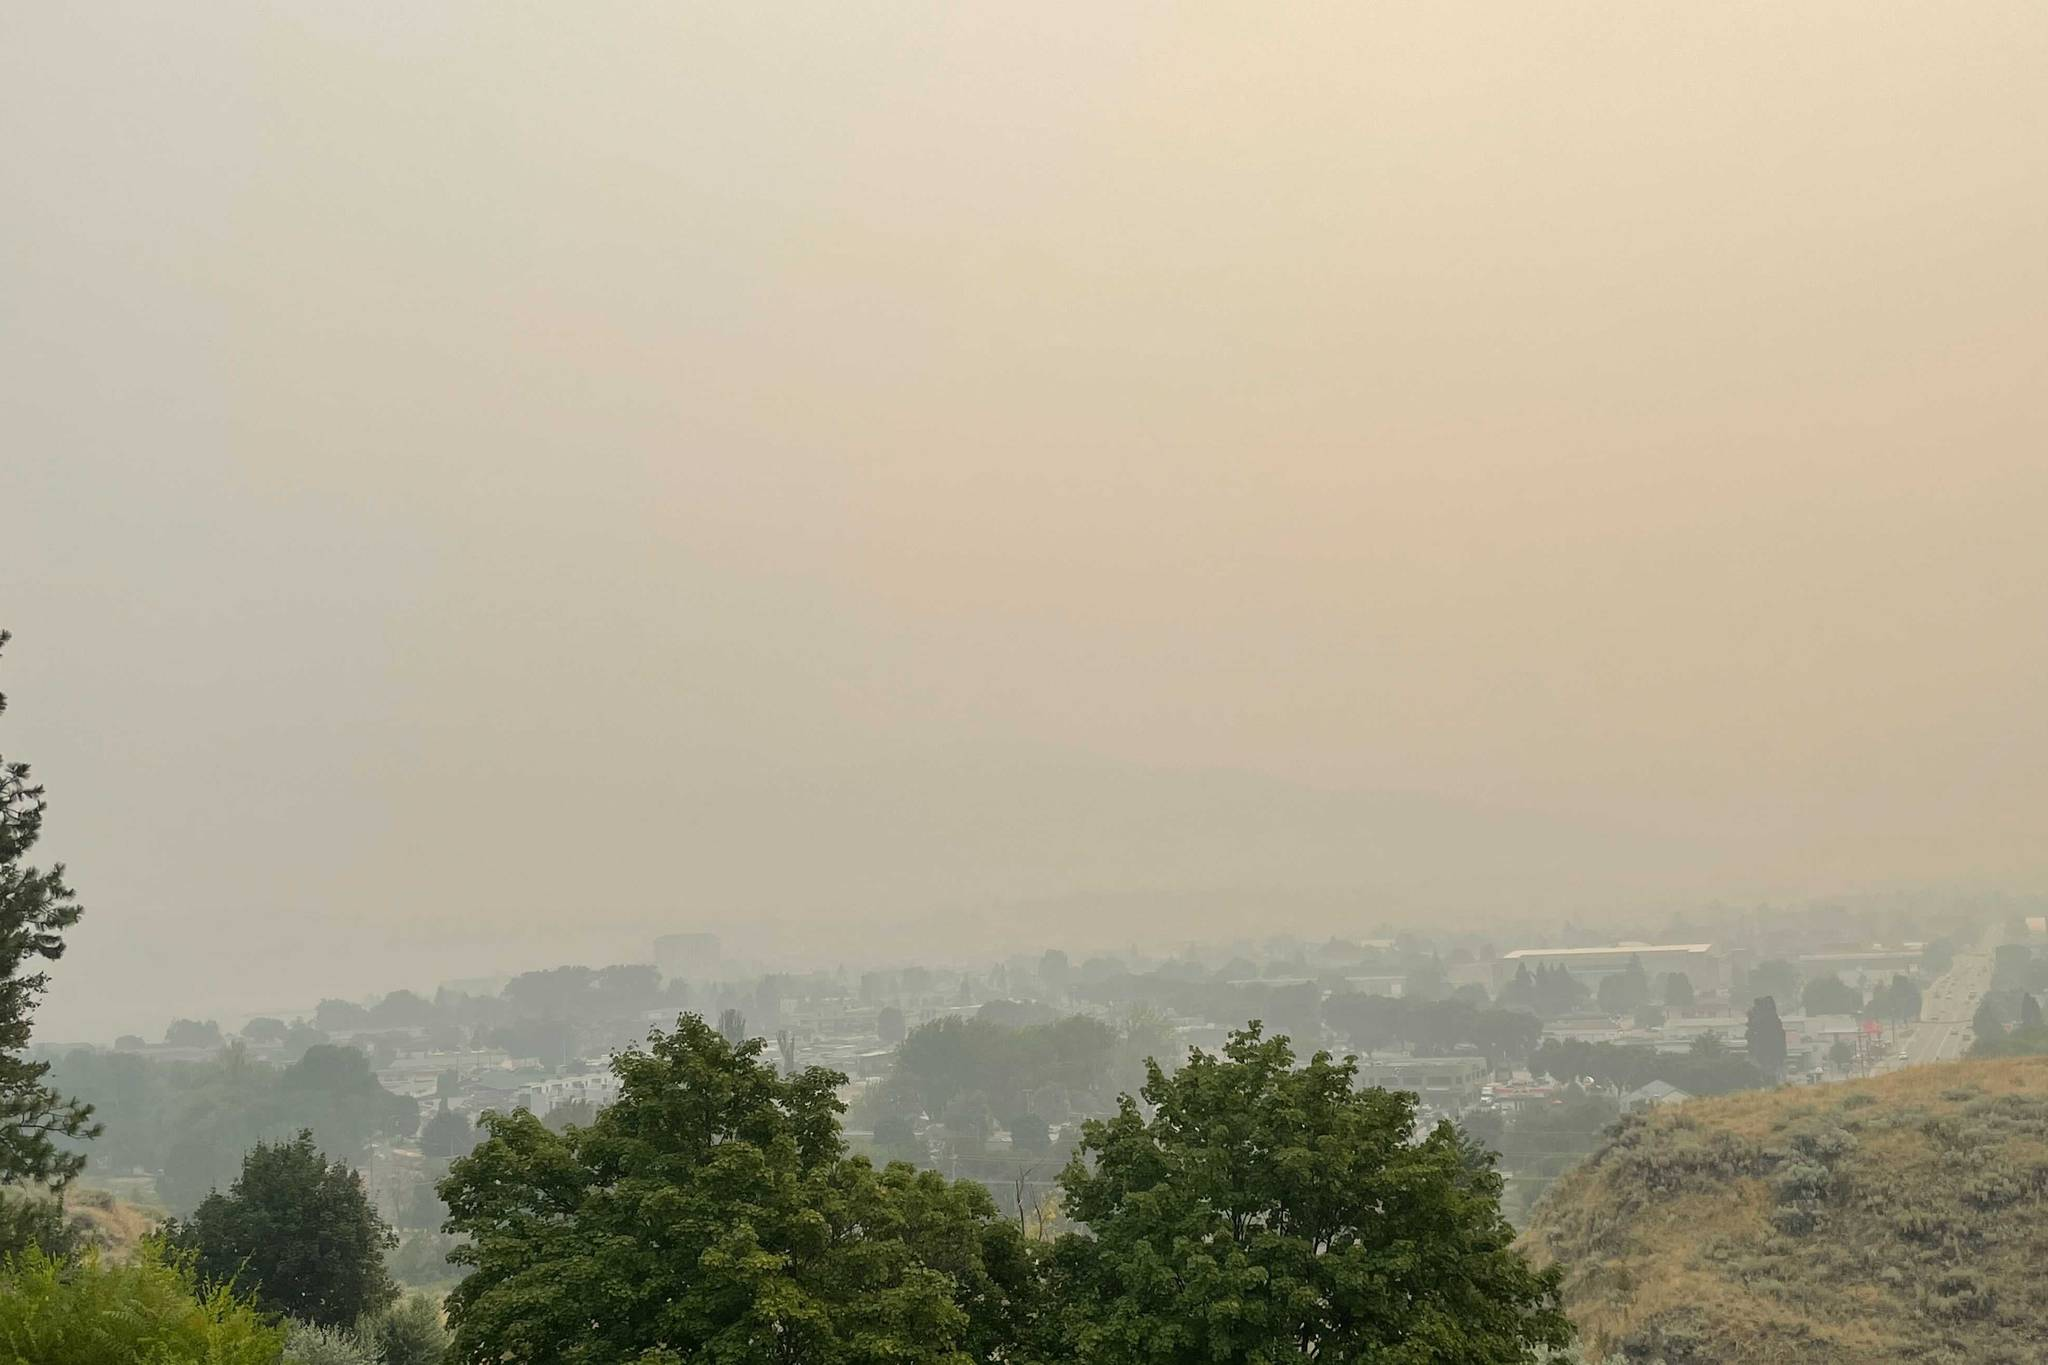 The City of Penticton as seen from West Bench on Saturday morning, July 31. (Brennan Phillips - Western News)